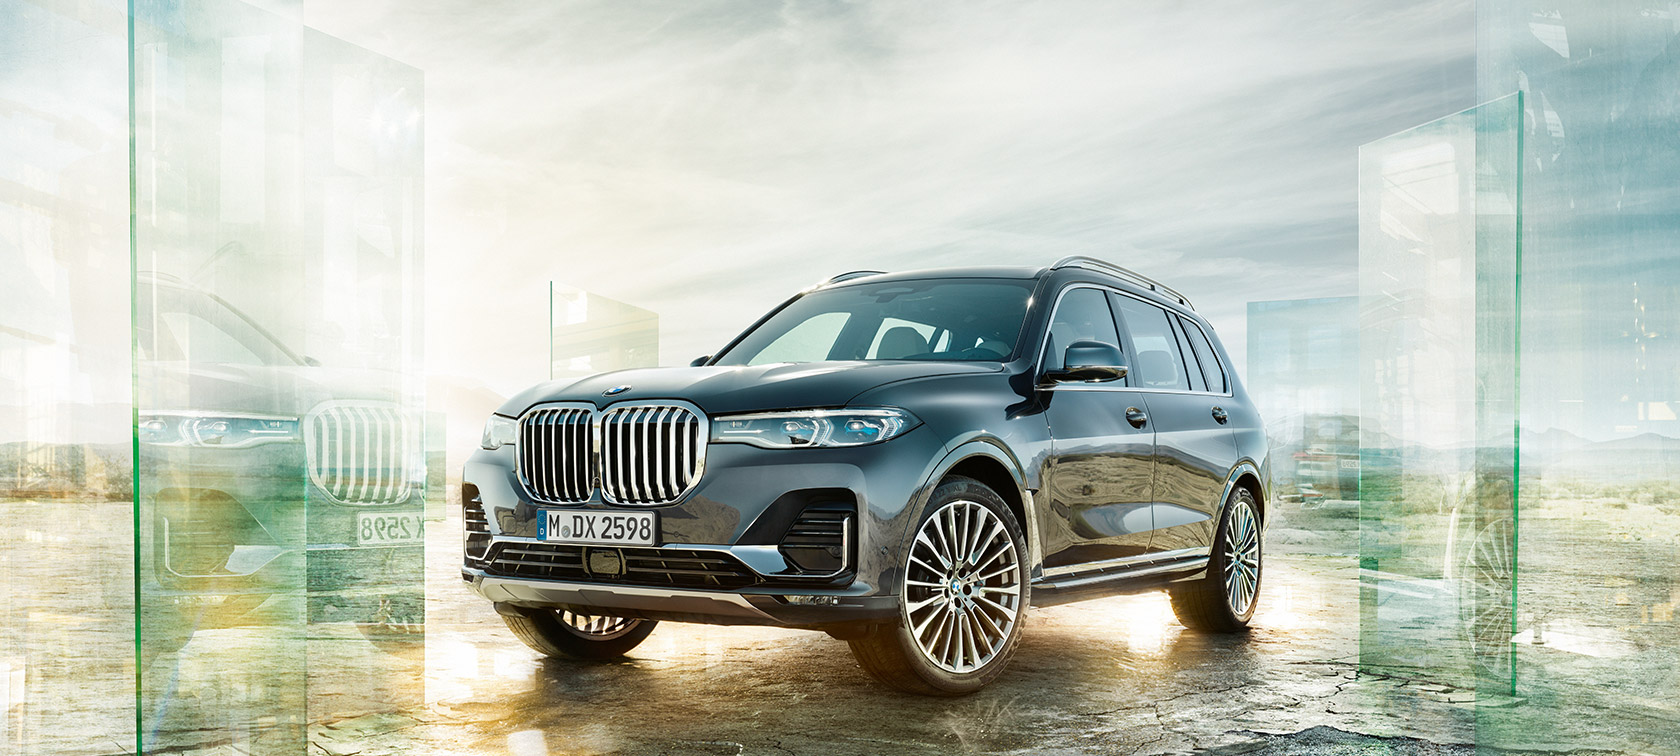 The BMW X7 in the three-quarter front view in front of the desert background